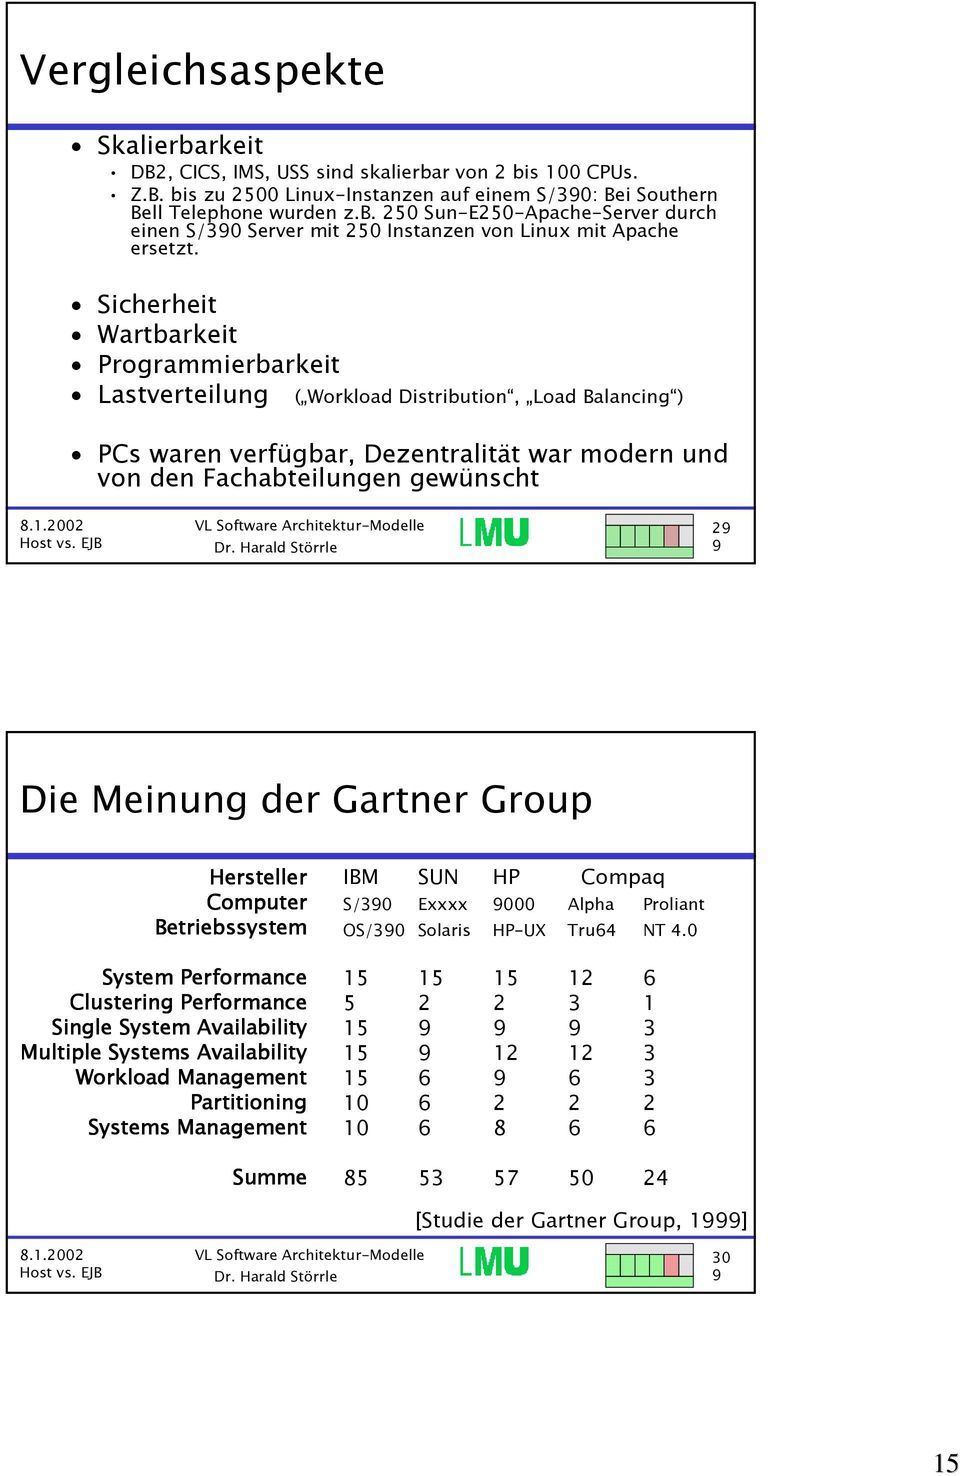 der Gartner Group Hersteller Computer Betriebssystem System Performance Clustering Performance Single System Availability Multiple Systems Availability Workload Management Partitioning Systems